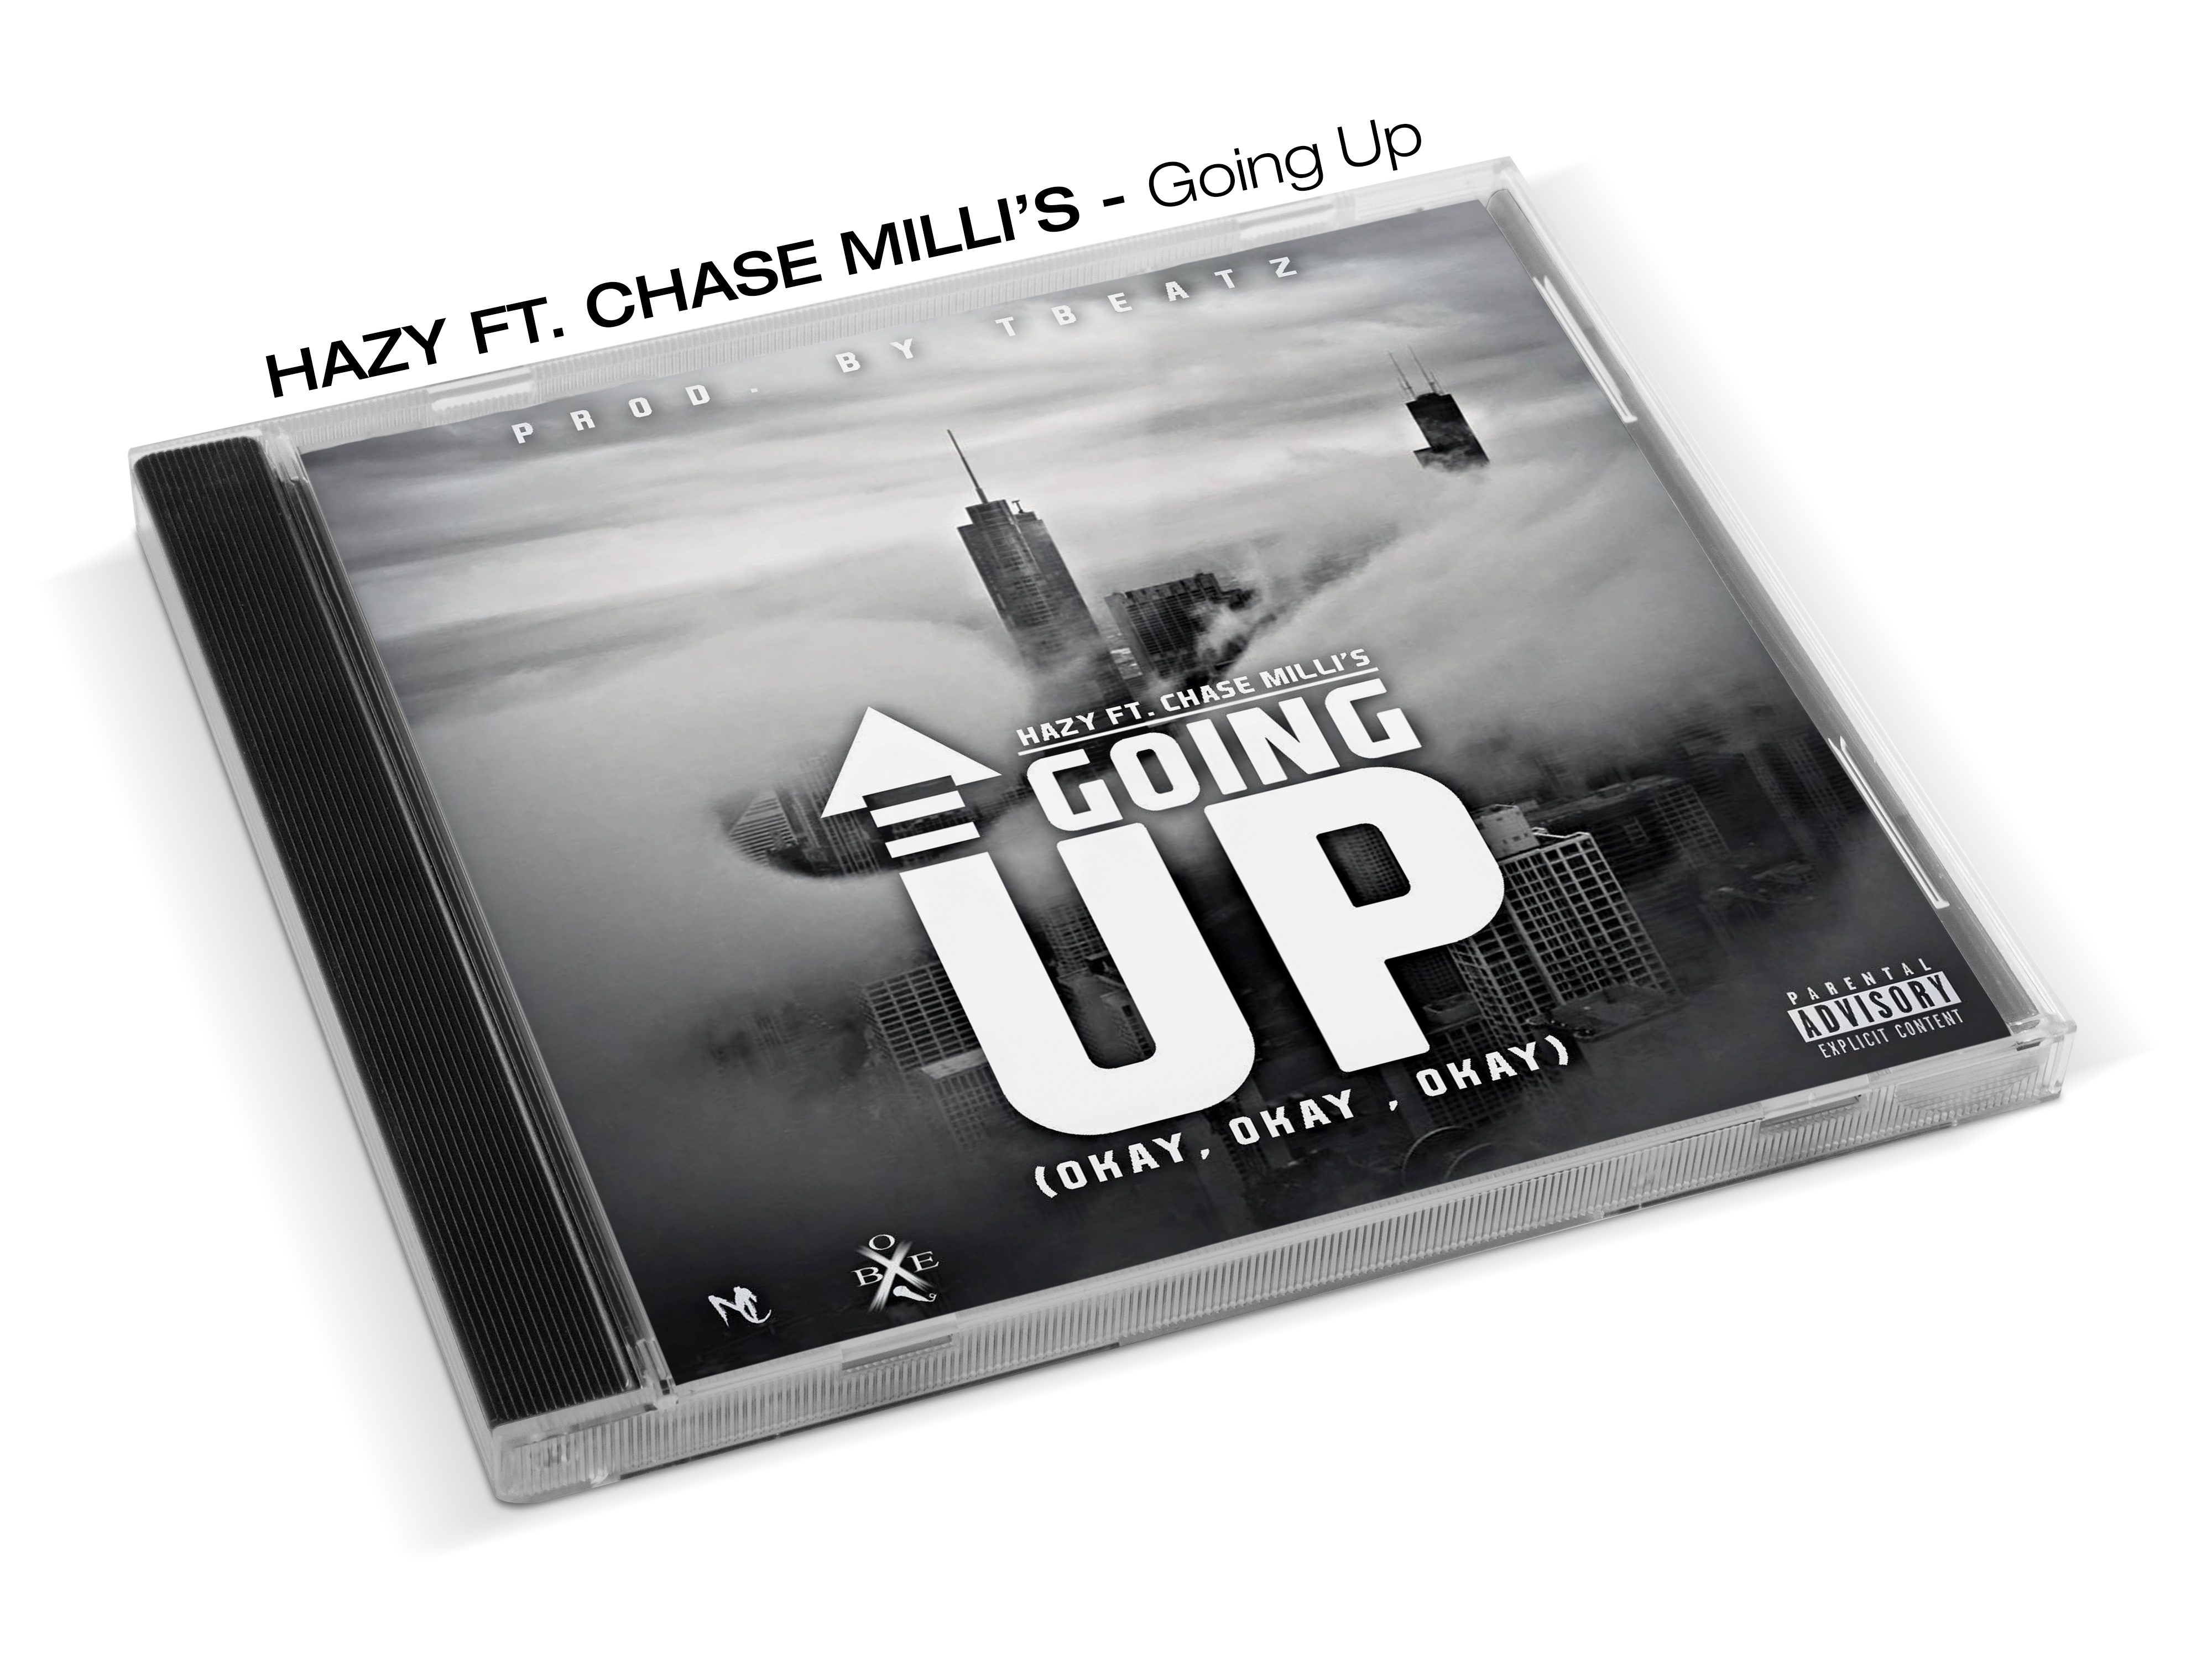 Going Up CD